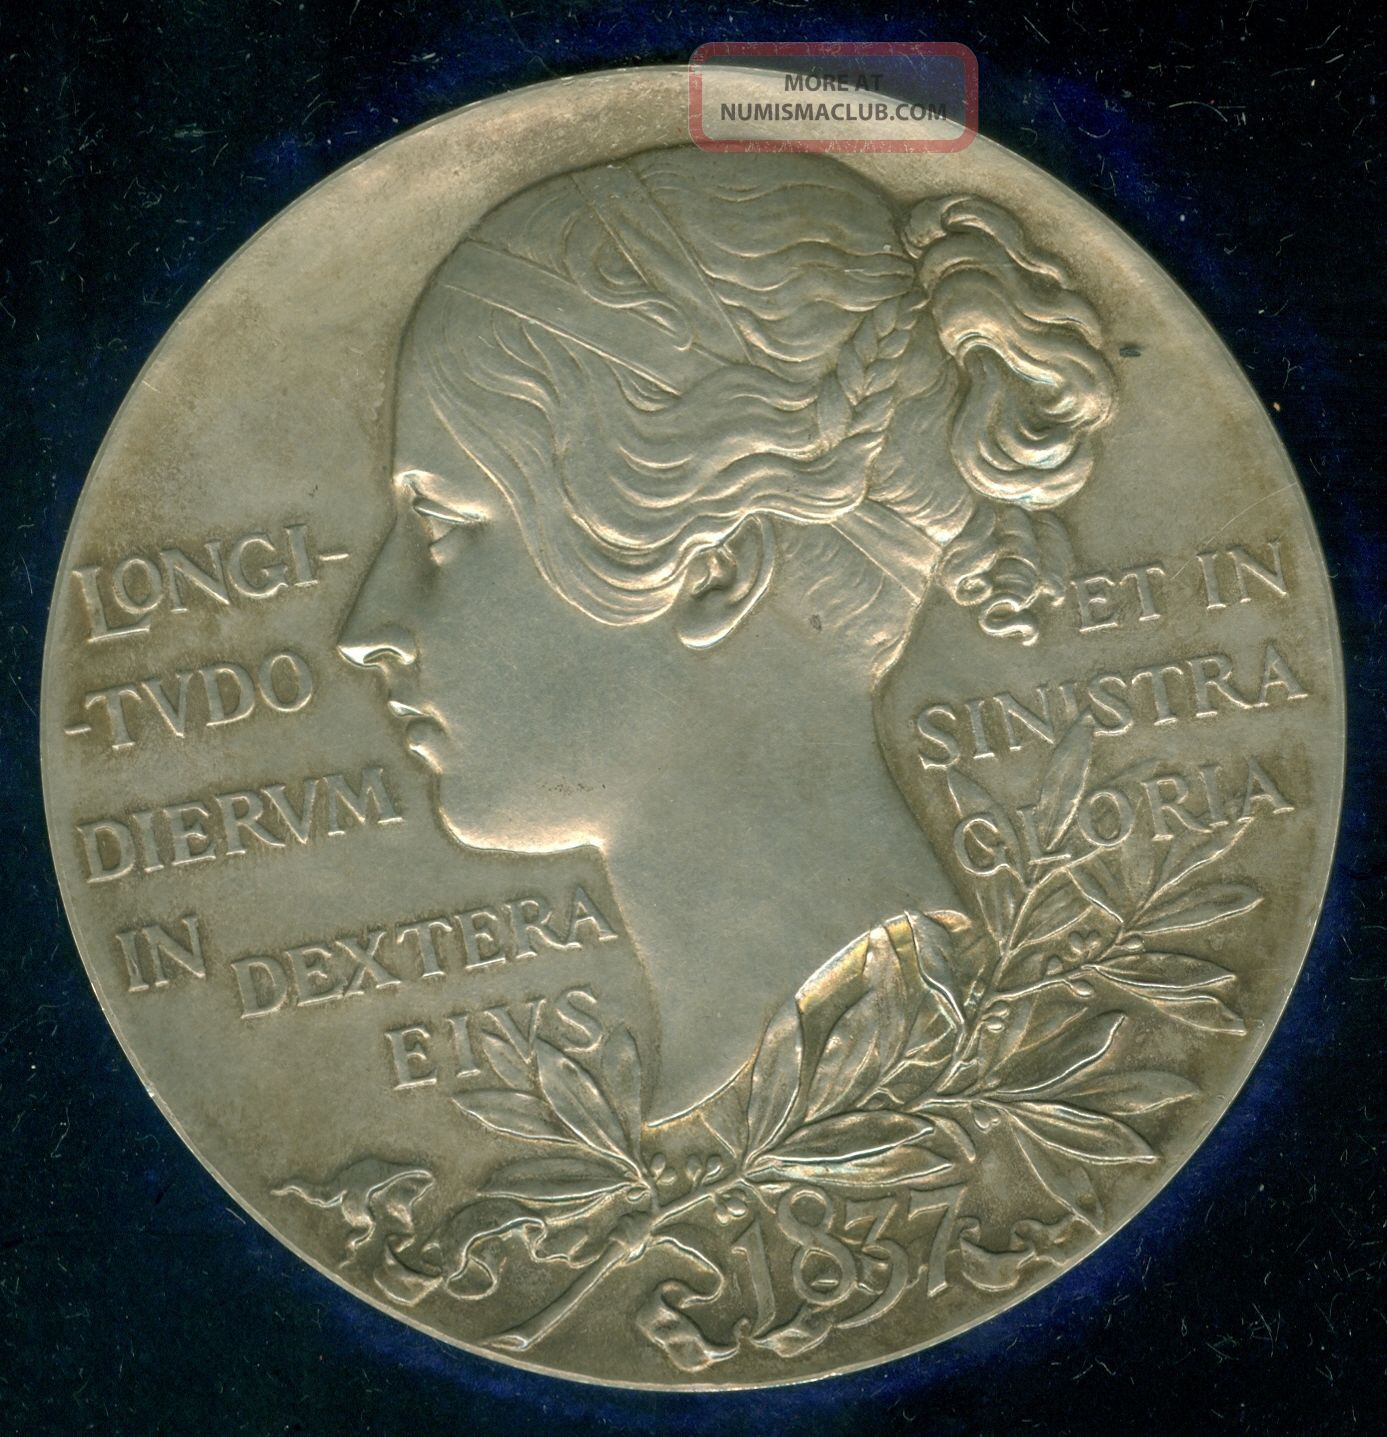 1897 Queen Victoria Diamond Jubilee Large Silver Medal By Royal,  De Saulles Exonumia photo